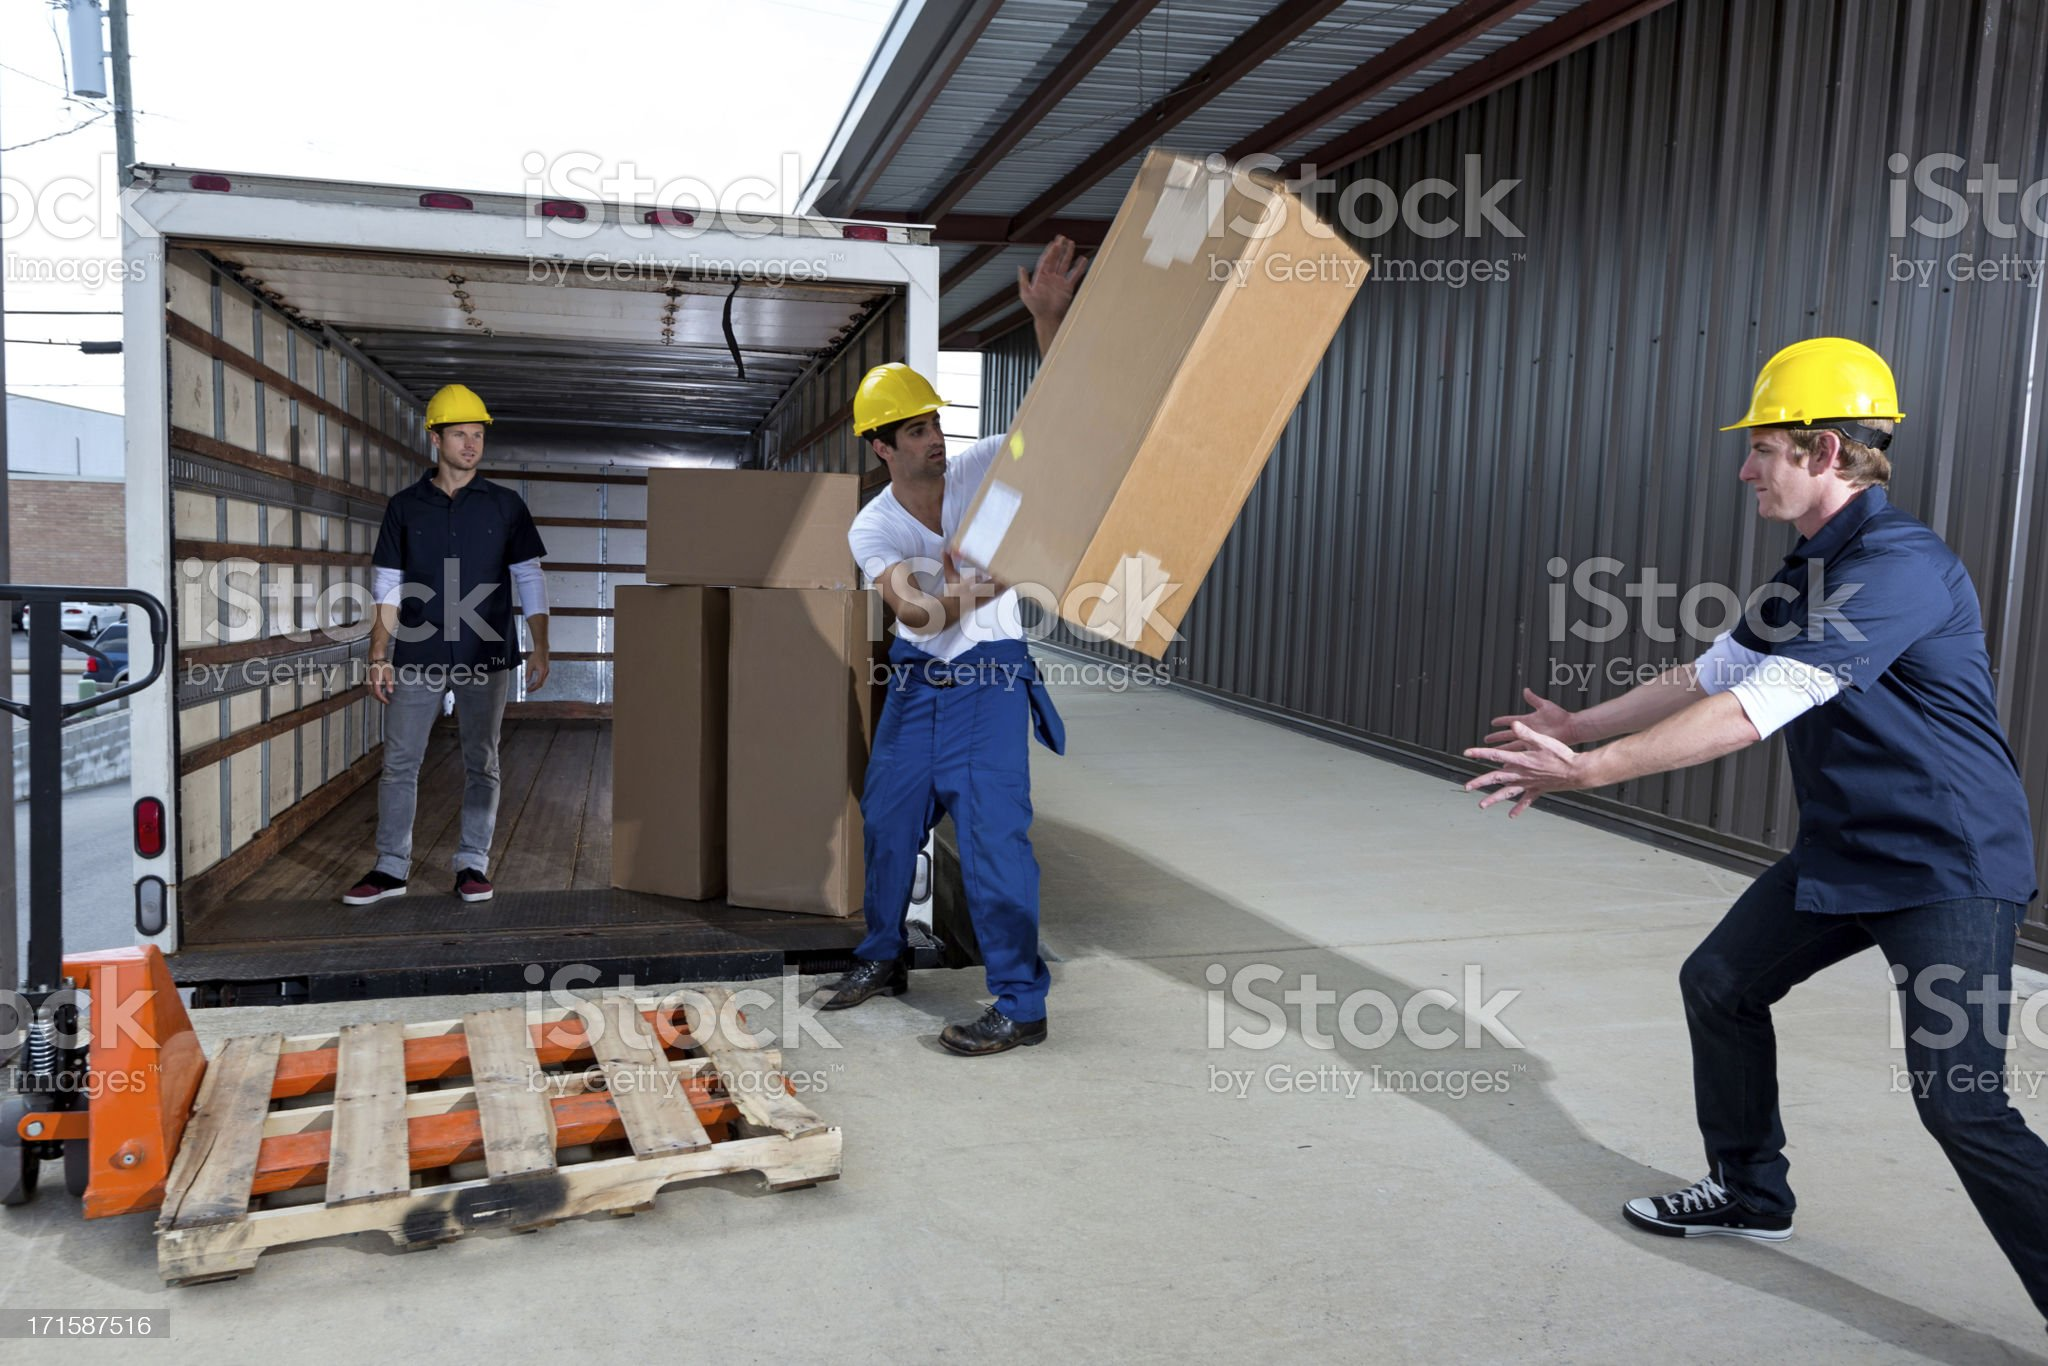 Shipping company employees throwing boxes royalty-free stock photo